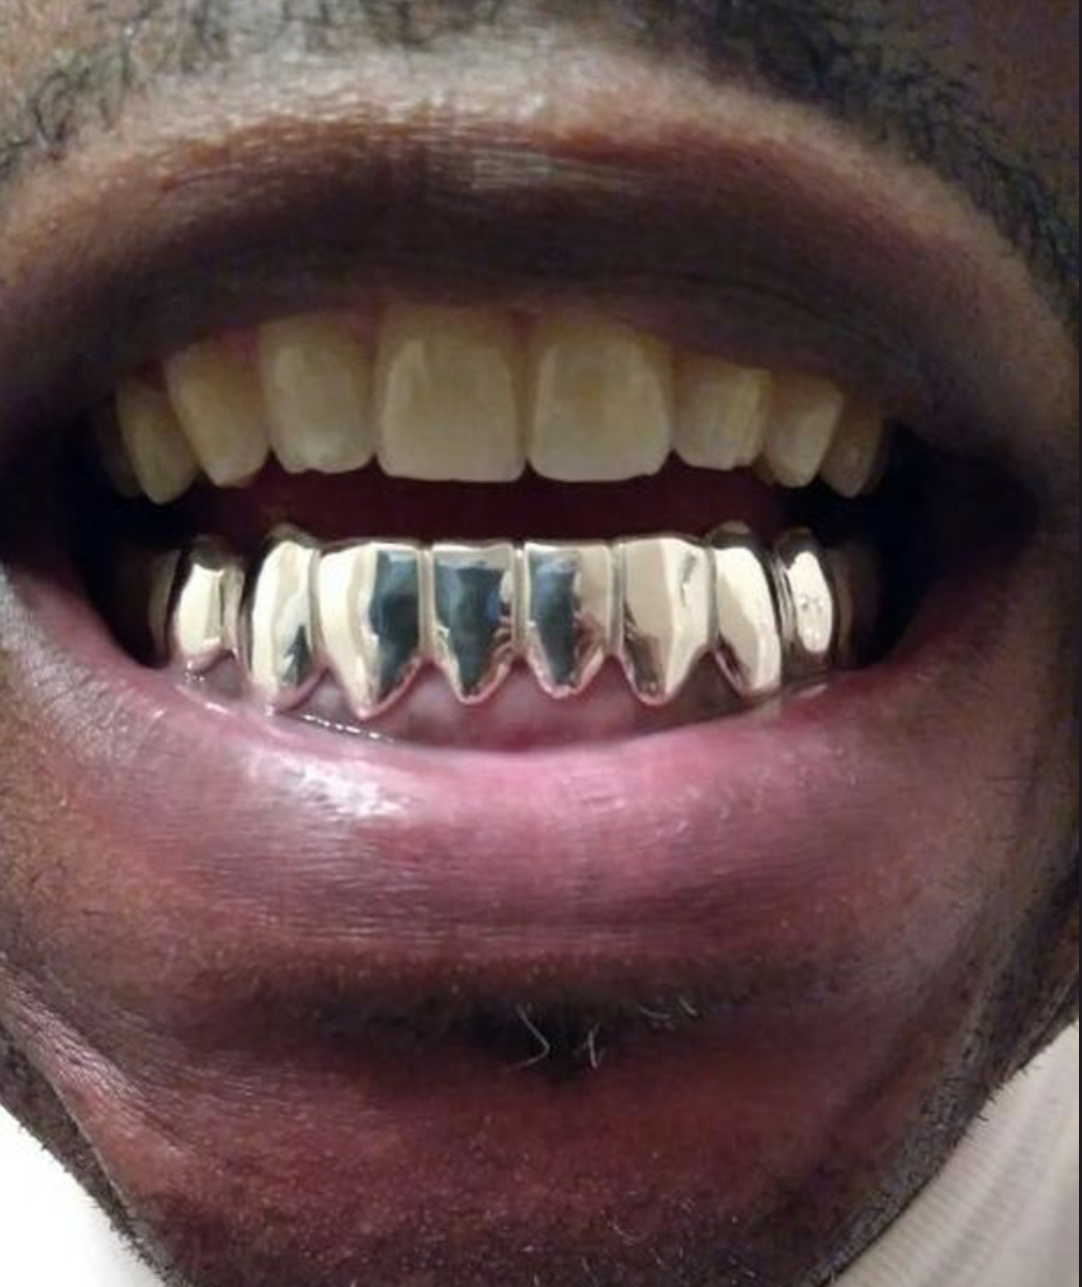 925 Sterling Silver Custom fit Handmade Grillz Plain Silver teeth REAL Grill  5 5 of 5 See More 34c035e90